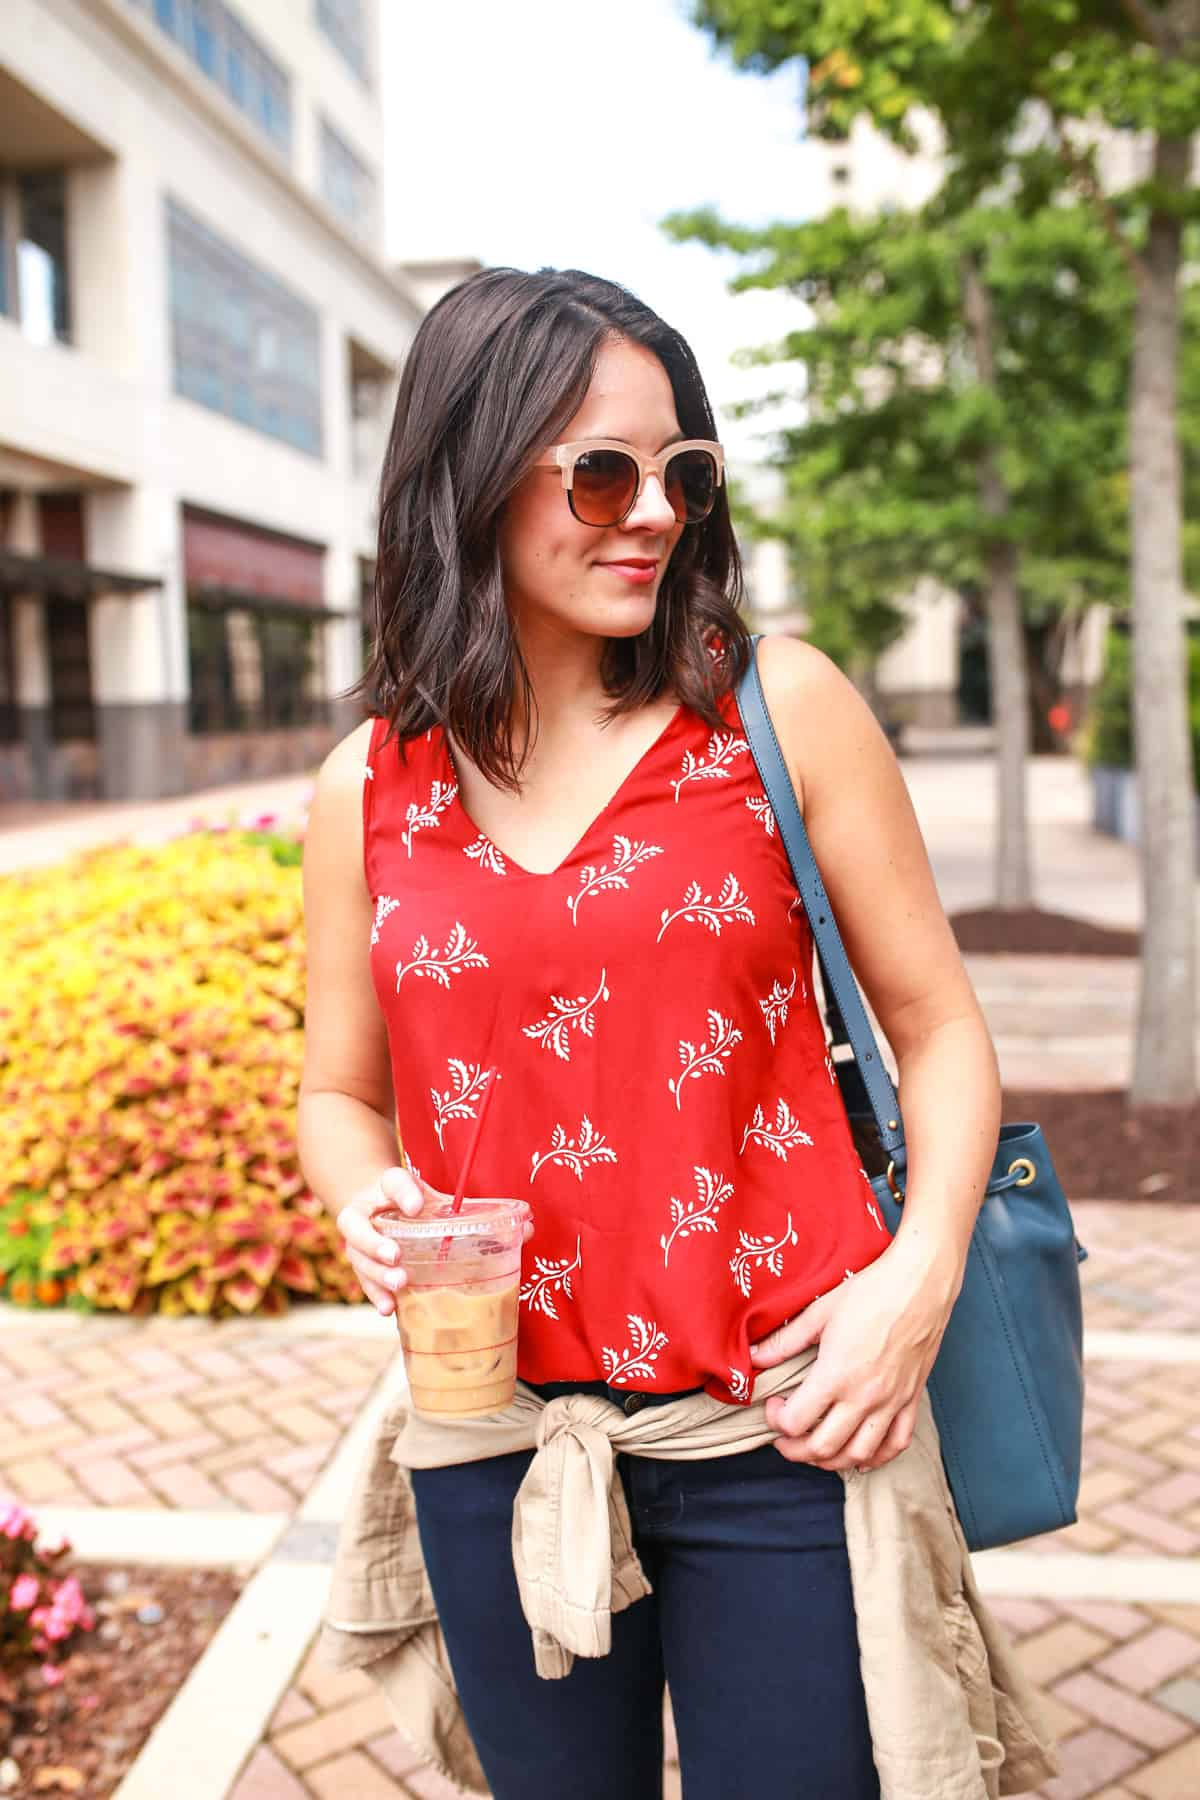 spring Old Navy outfit ideas - My Style Vita @mystylevita